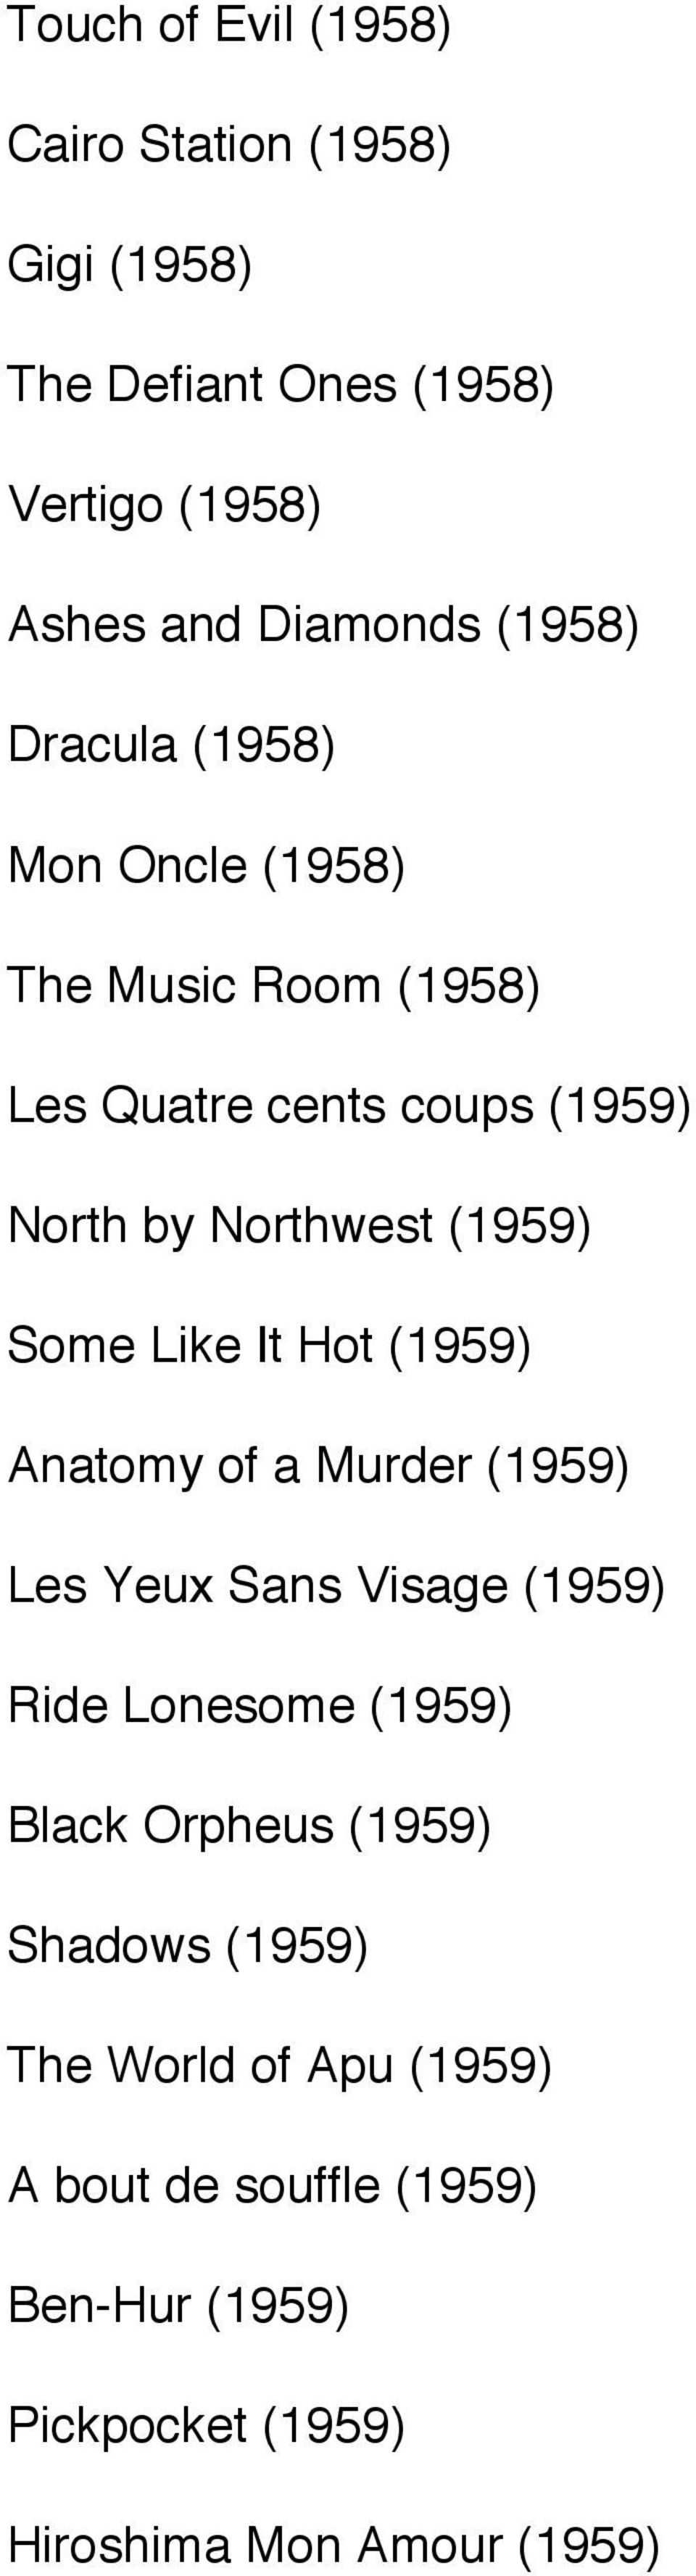 Like It Hot (1959) Anatomy of a Murder (1959) Les Yeux Sans Visage (1959) Ride Lonesome (1959) Black Orpheus (1959)